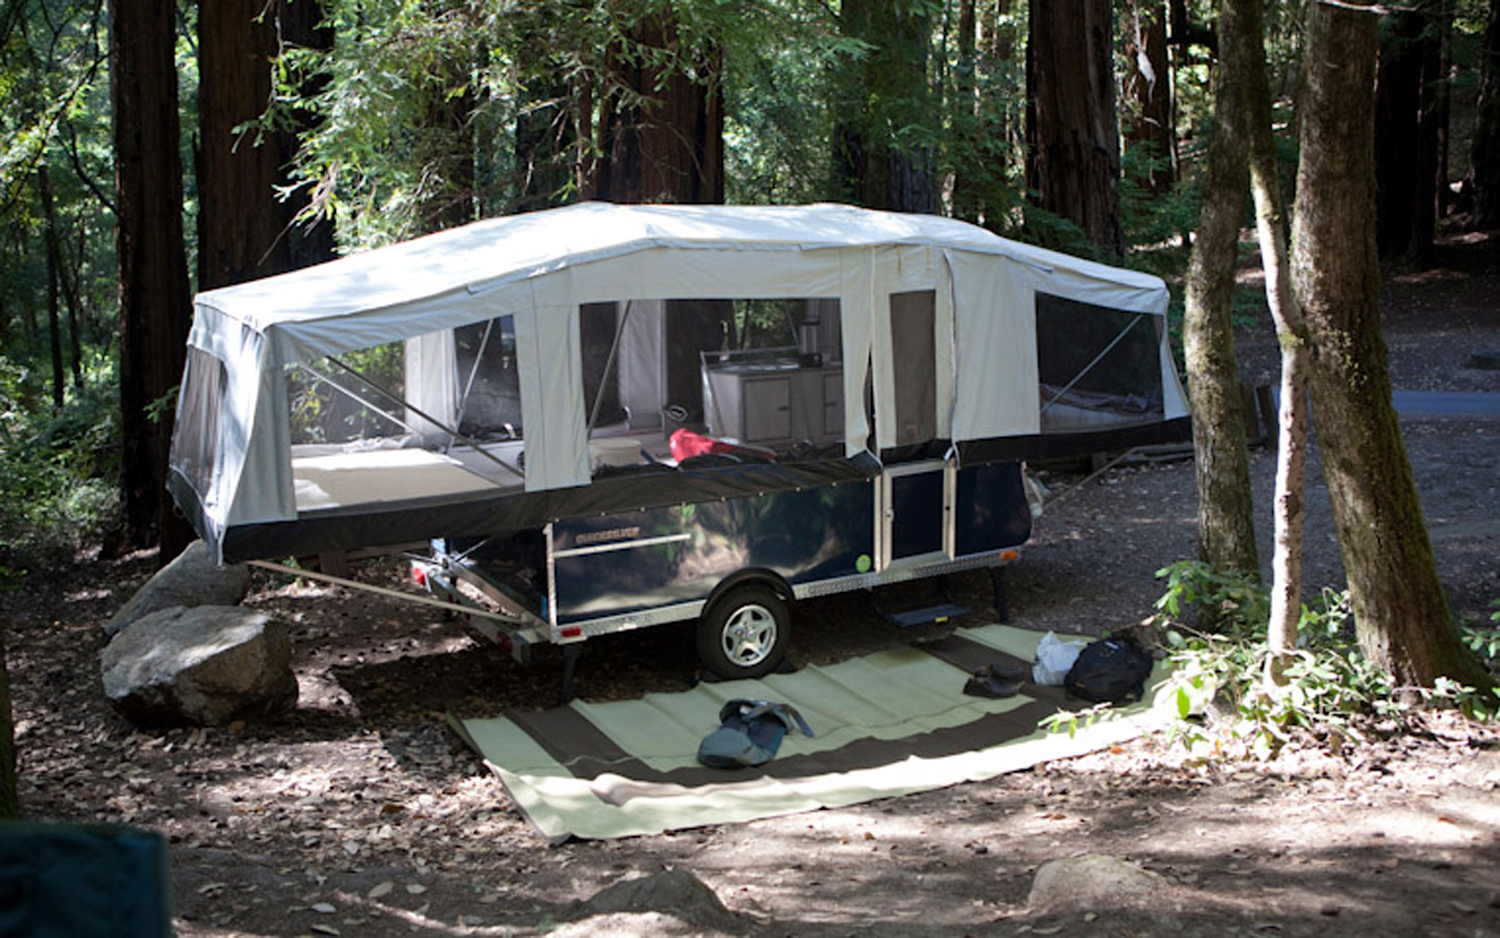 Camping Trailer | Camper Photo Gallery